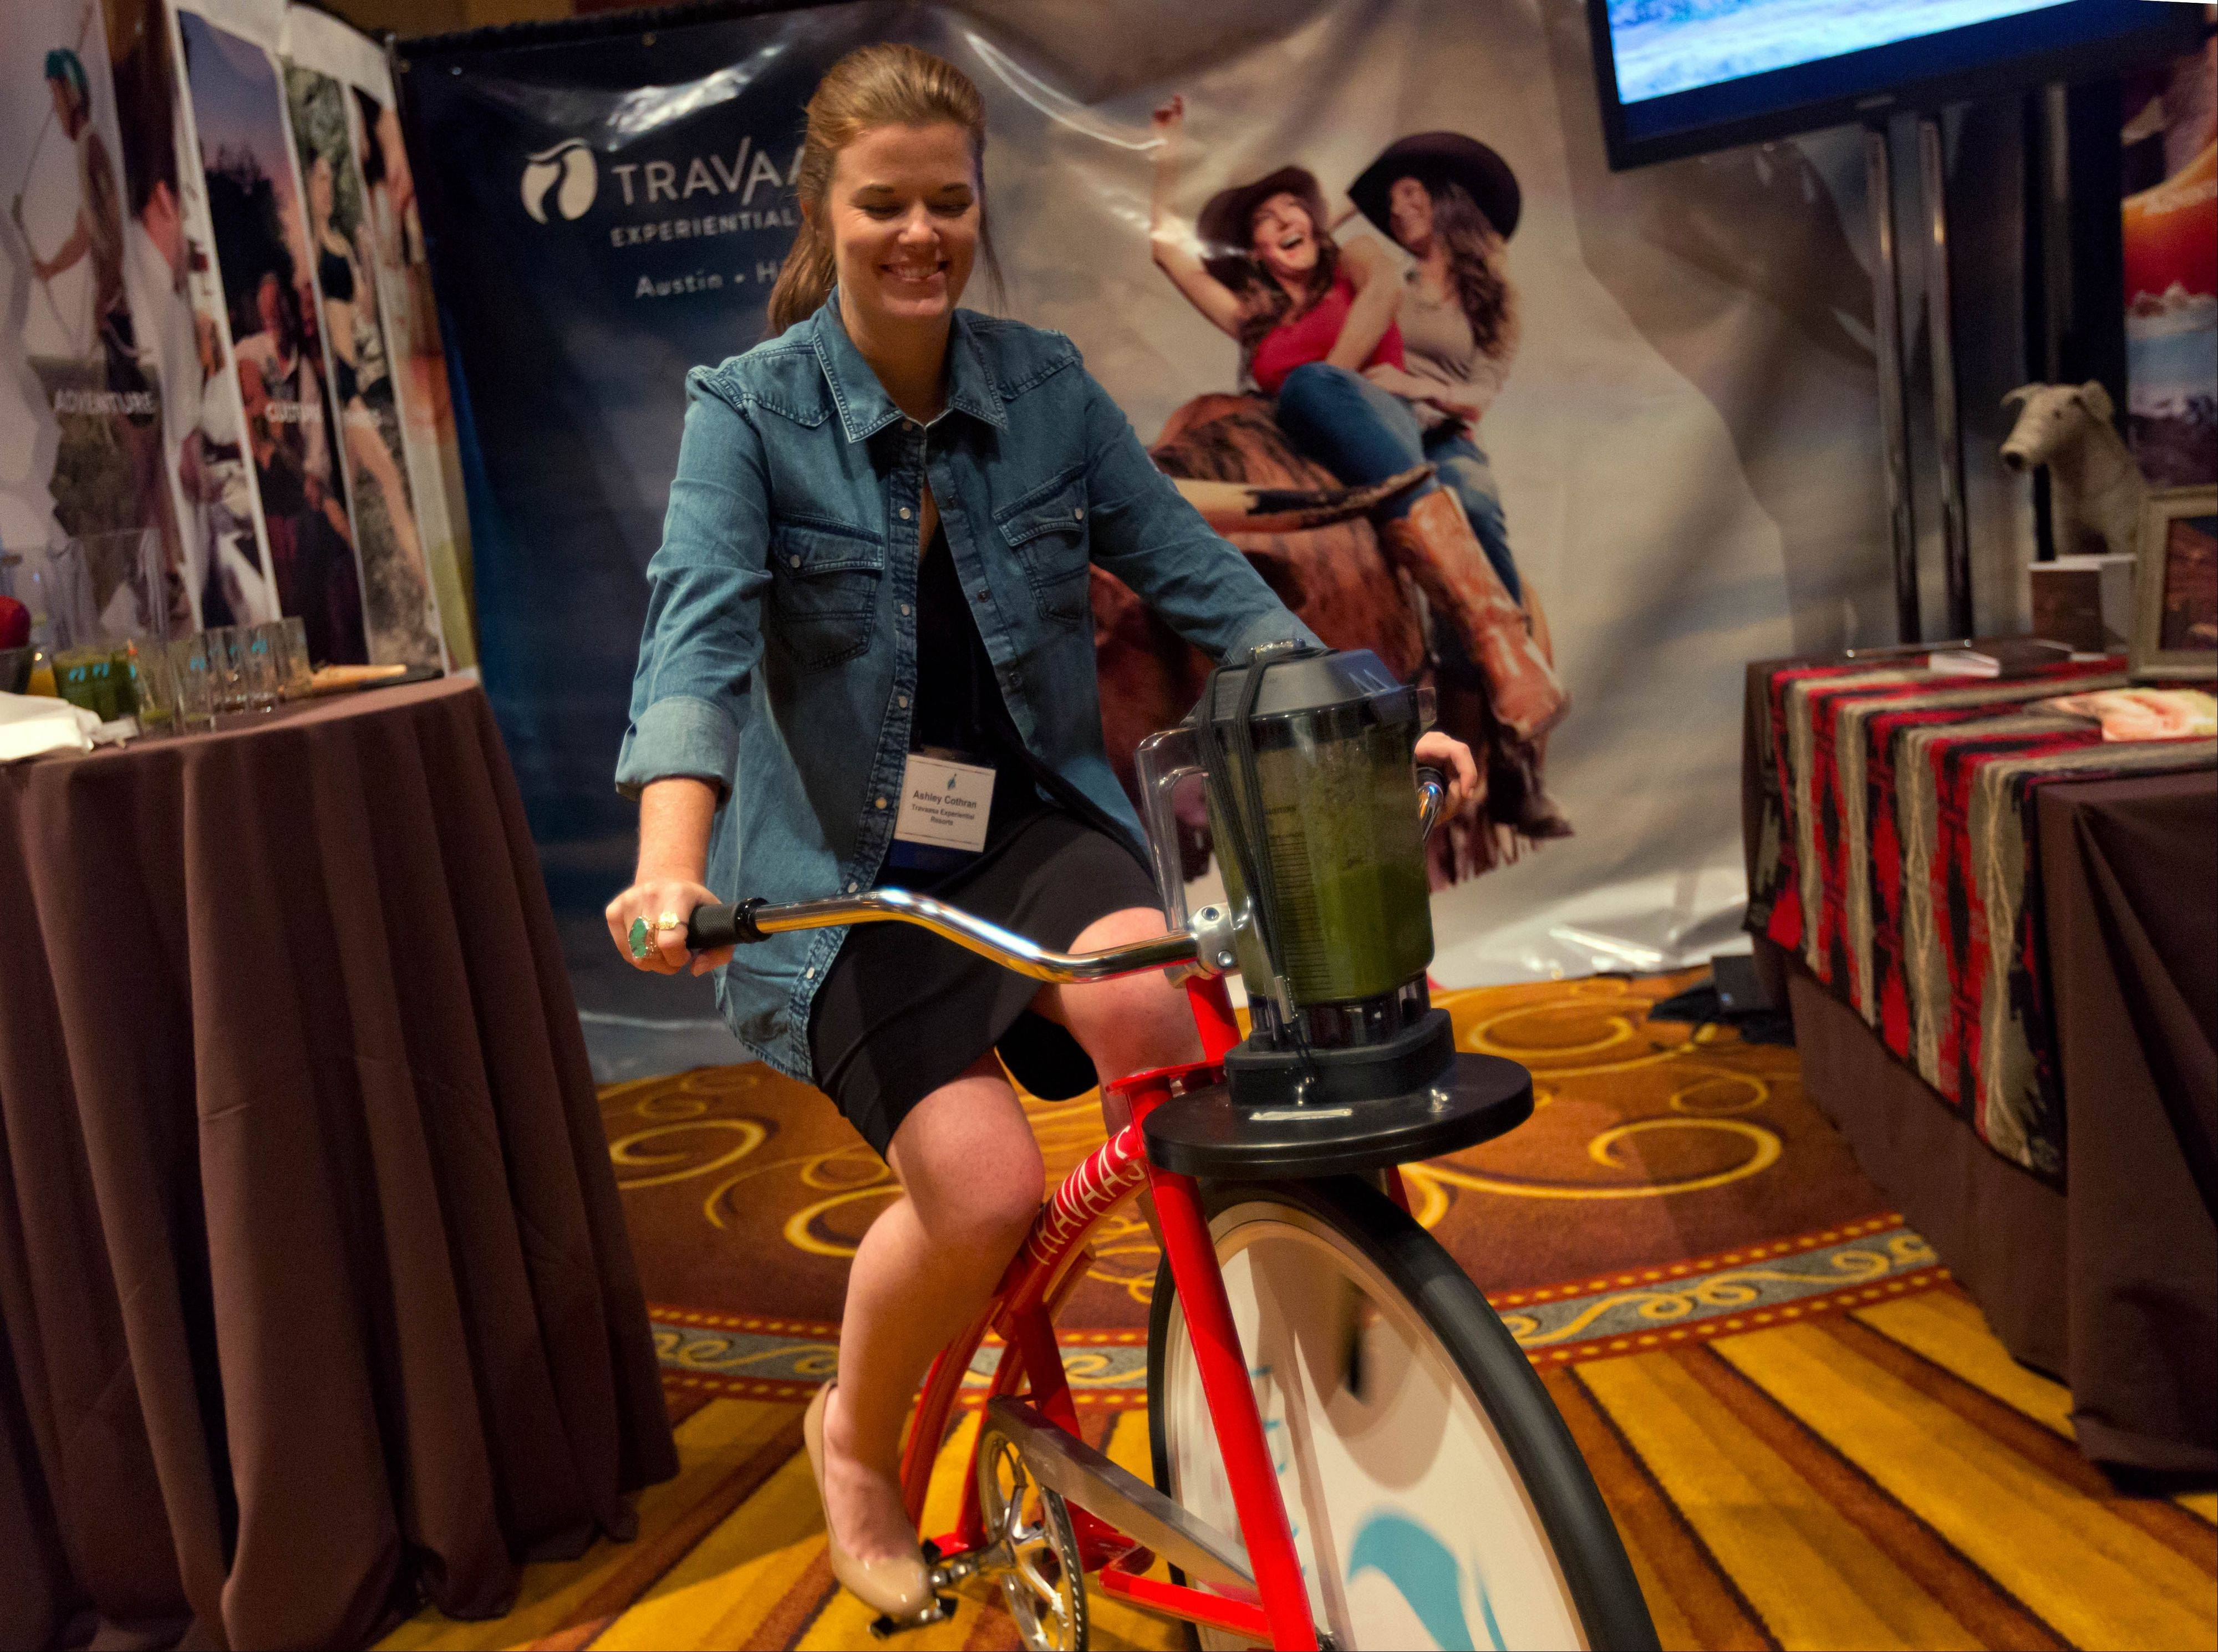 Ashley Cothran, with Travaasa Experiential Resorts, pedals a Fender Blender cycle during the International Spa Association event in New York. It's a stationary bicycle that powers a juicer attached at the handlebars.